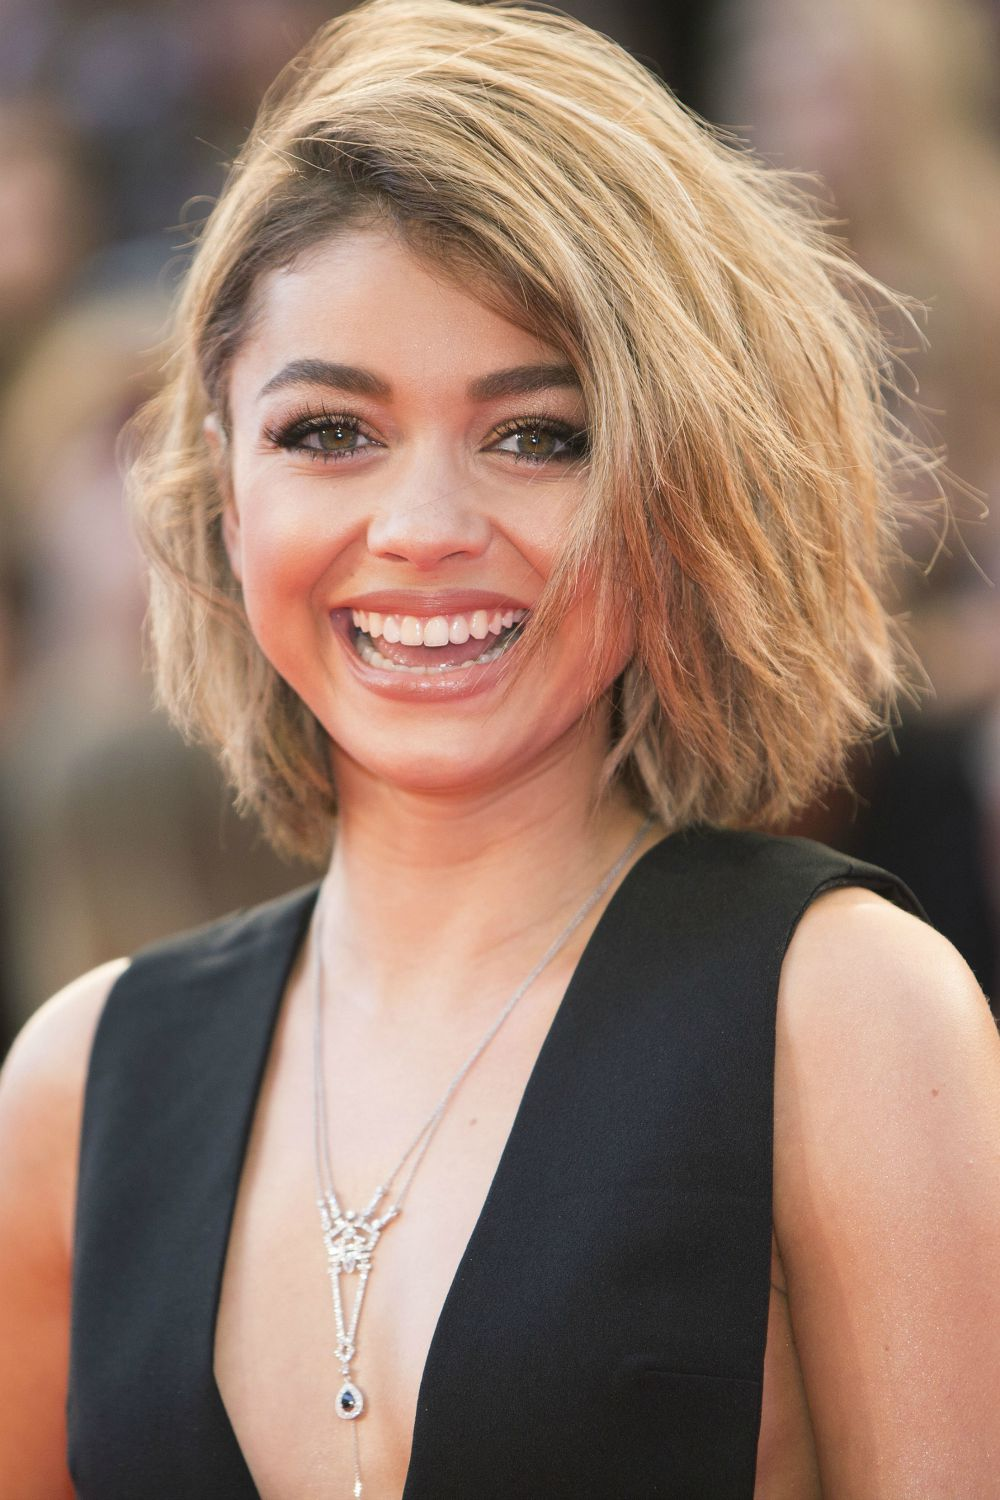 List Of Haircuts : Short Hairstyles For Women Here Is The List Of Some Short Hairstyles ...